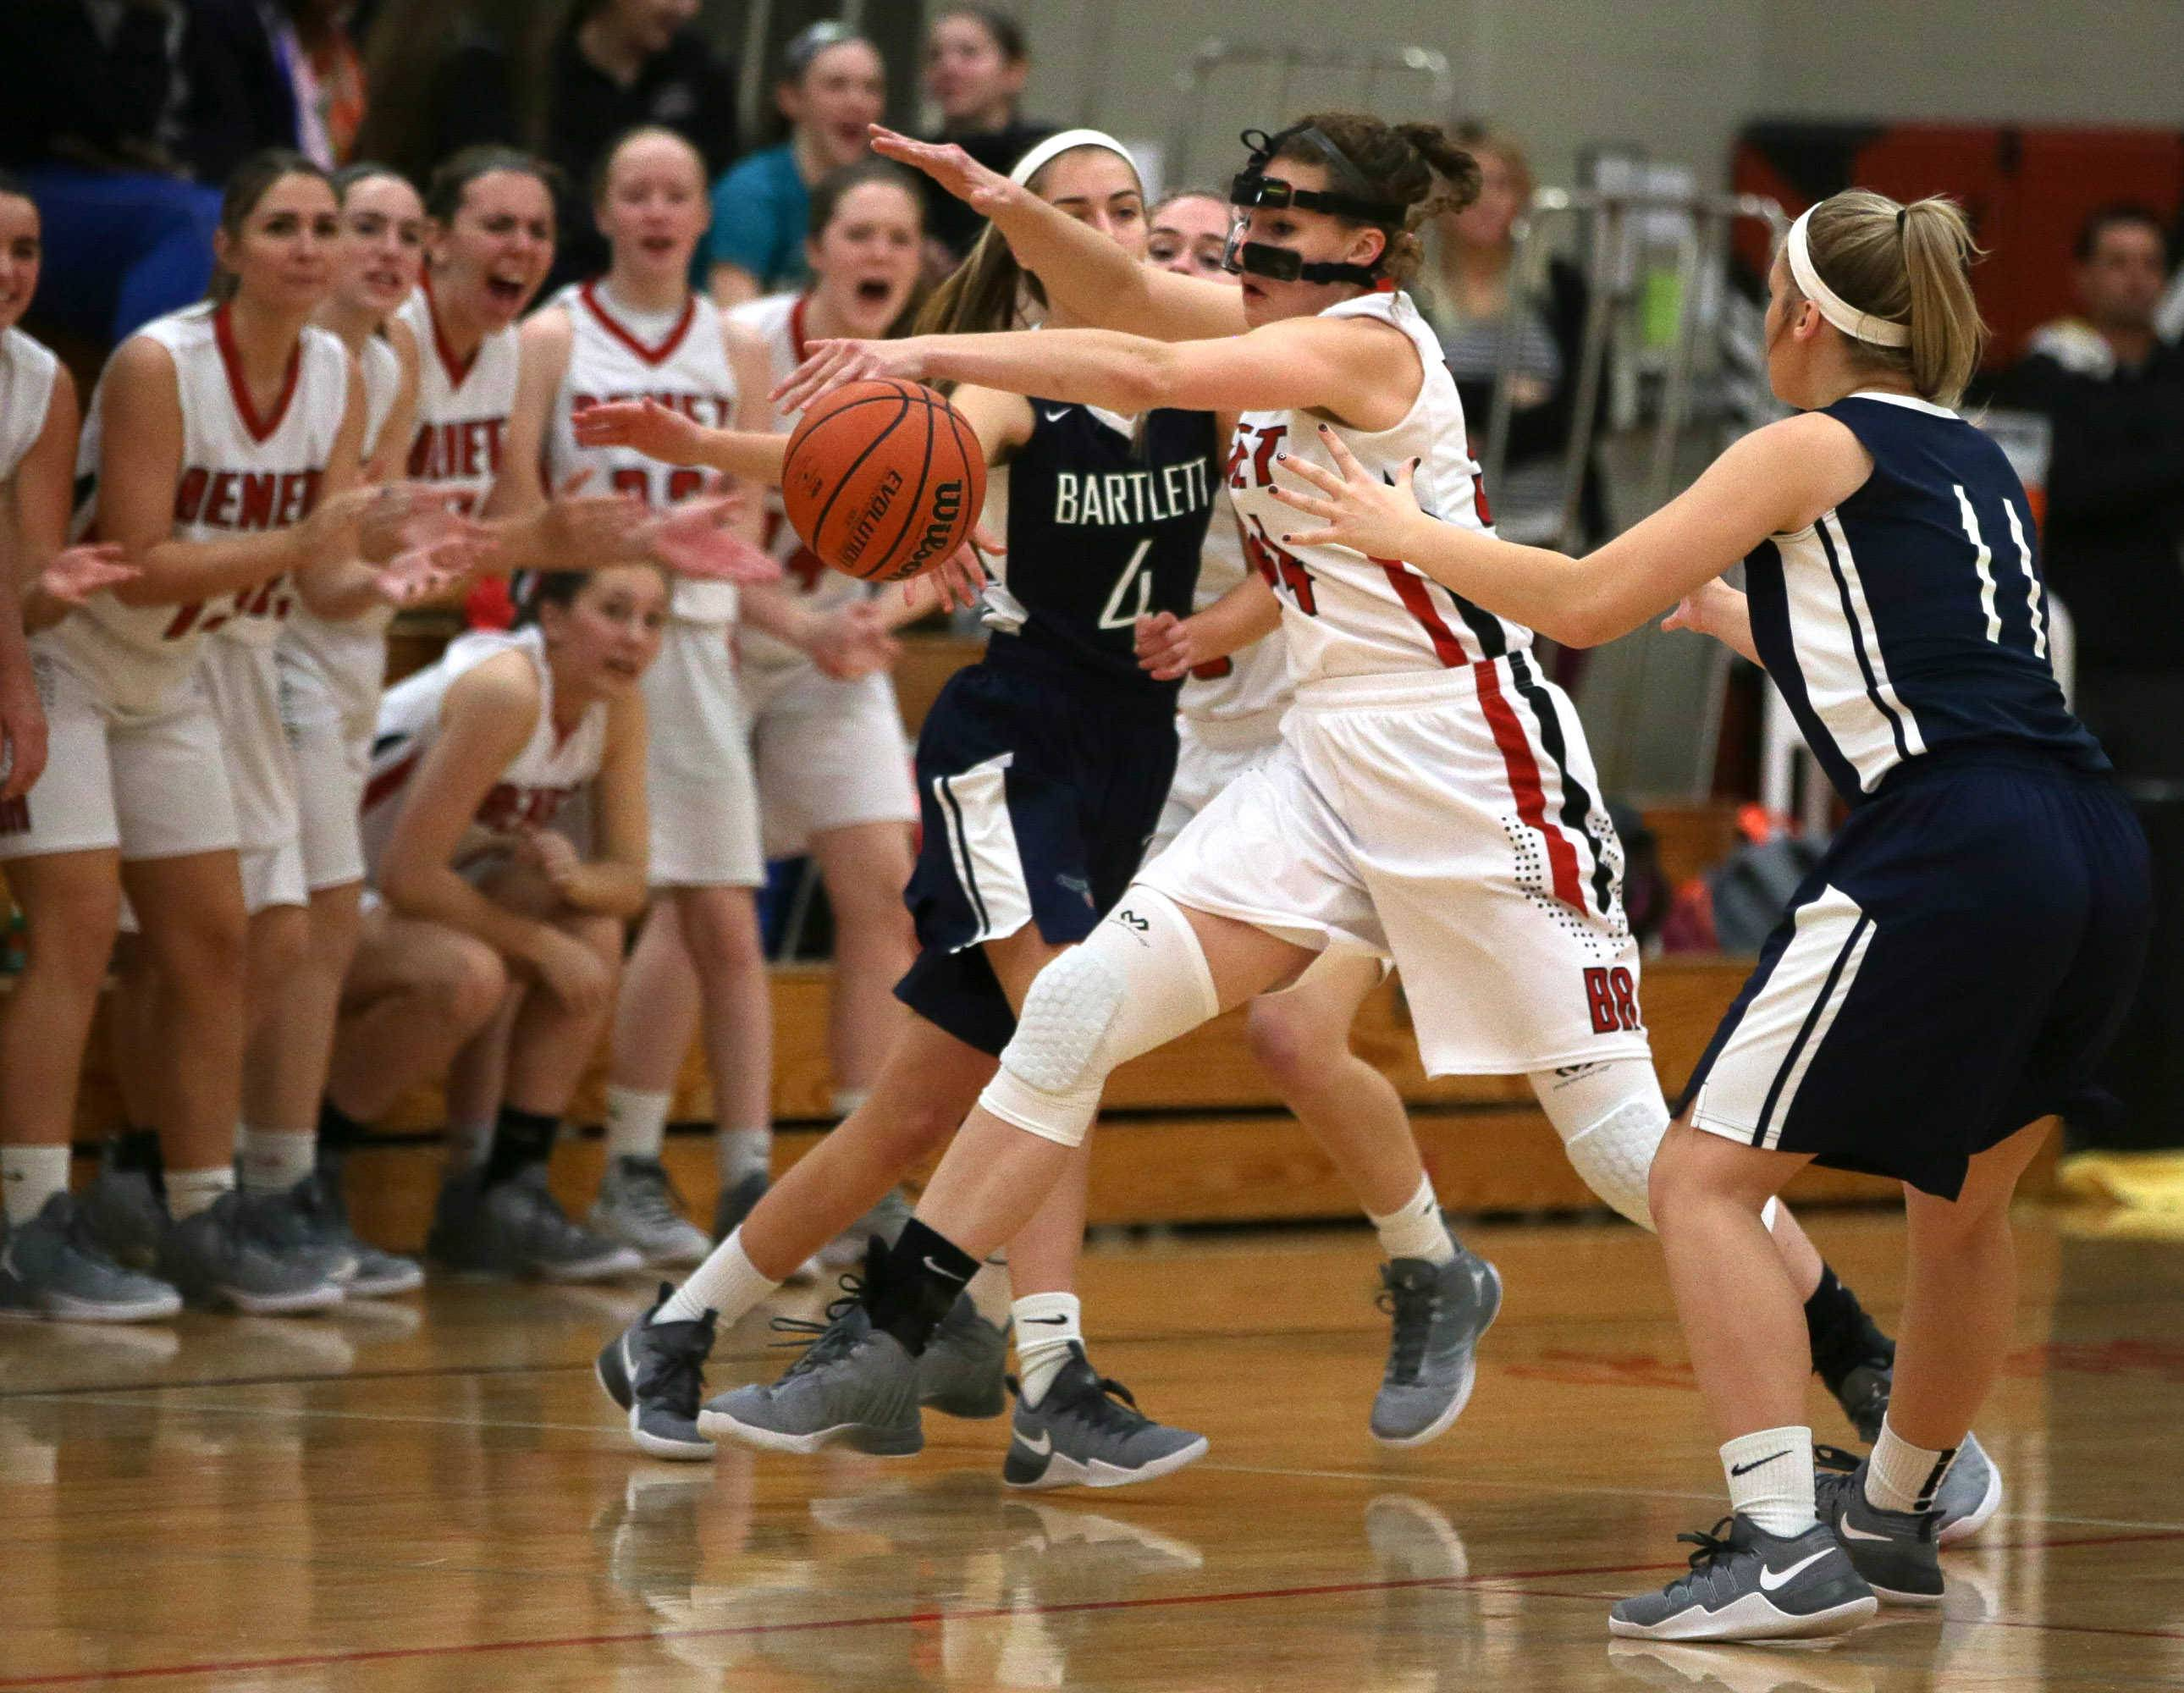 Benet center Katherine Jaseckas (54) steals a pass against Bartlett guard Kayla Hare (4) at Benet Academy in Lisle, IL on Friday, November 18, 2016